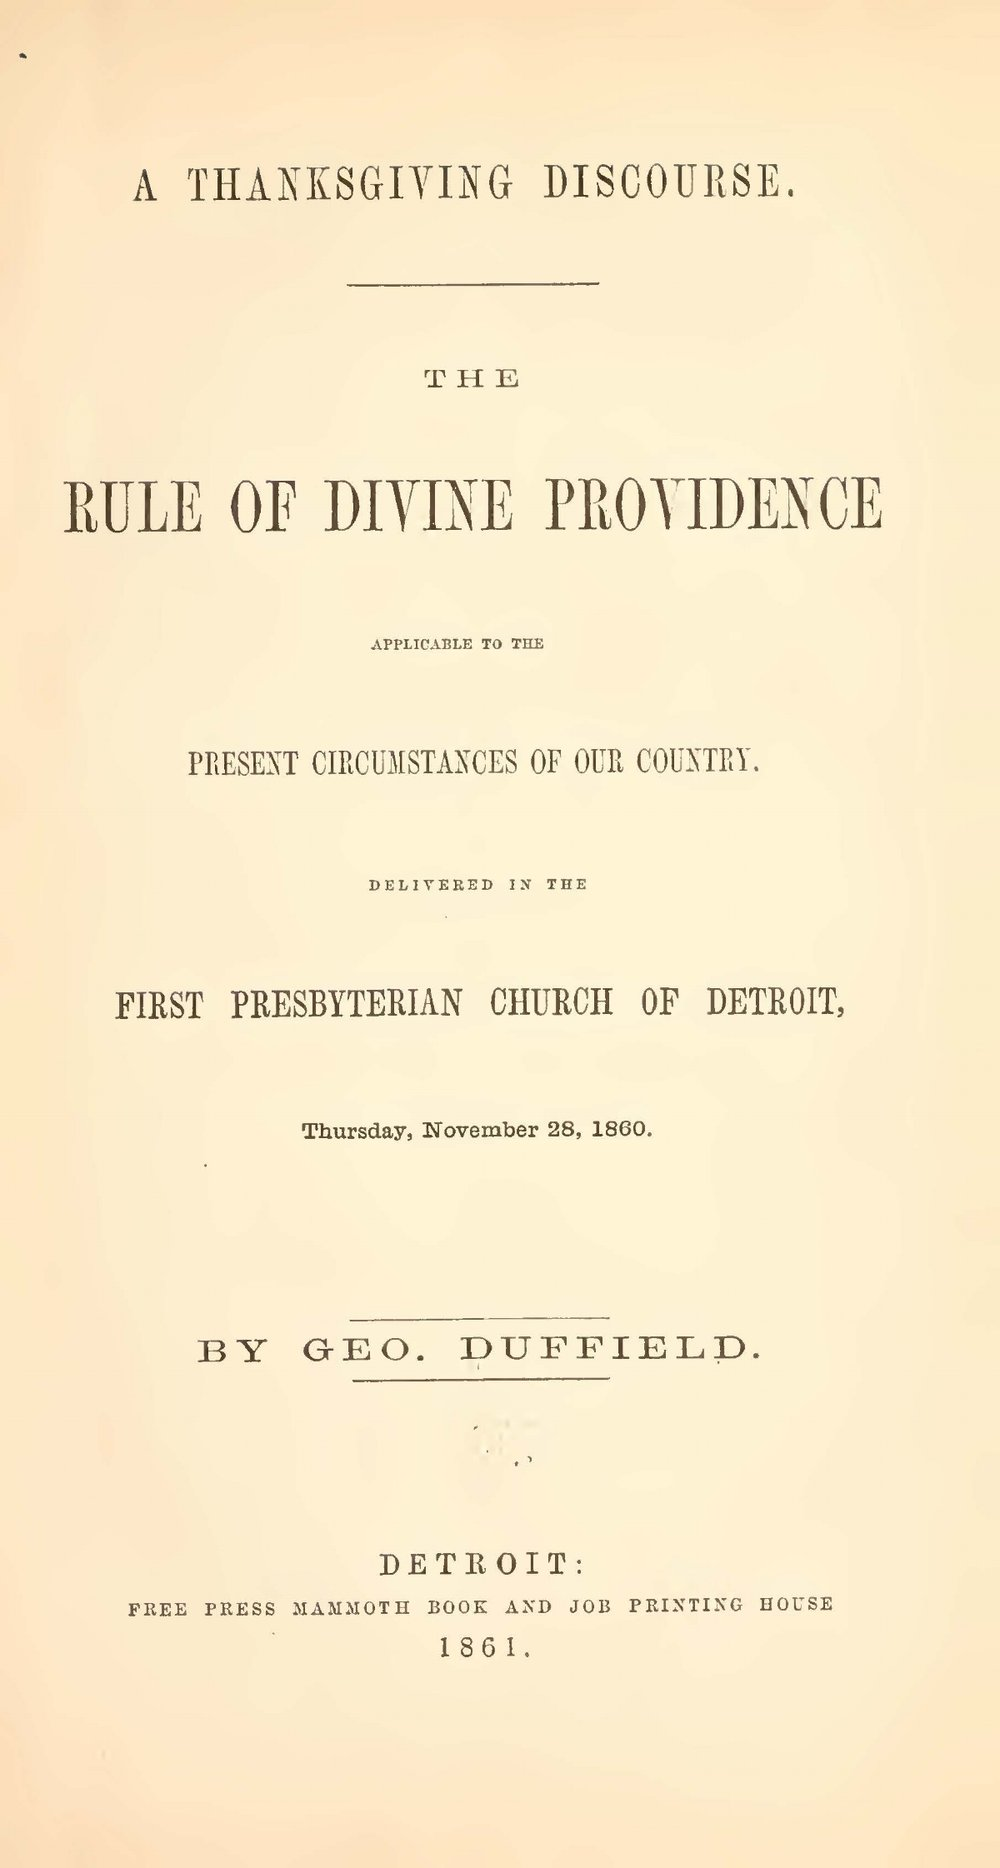 Duffield, IV, George, A Thanksgiving Discourse The Rule of Divine Providence Applicable to the Present Circumstances Title Page.jpg